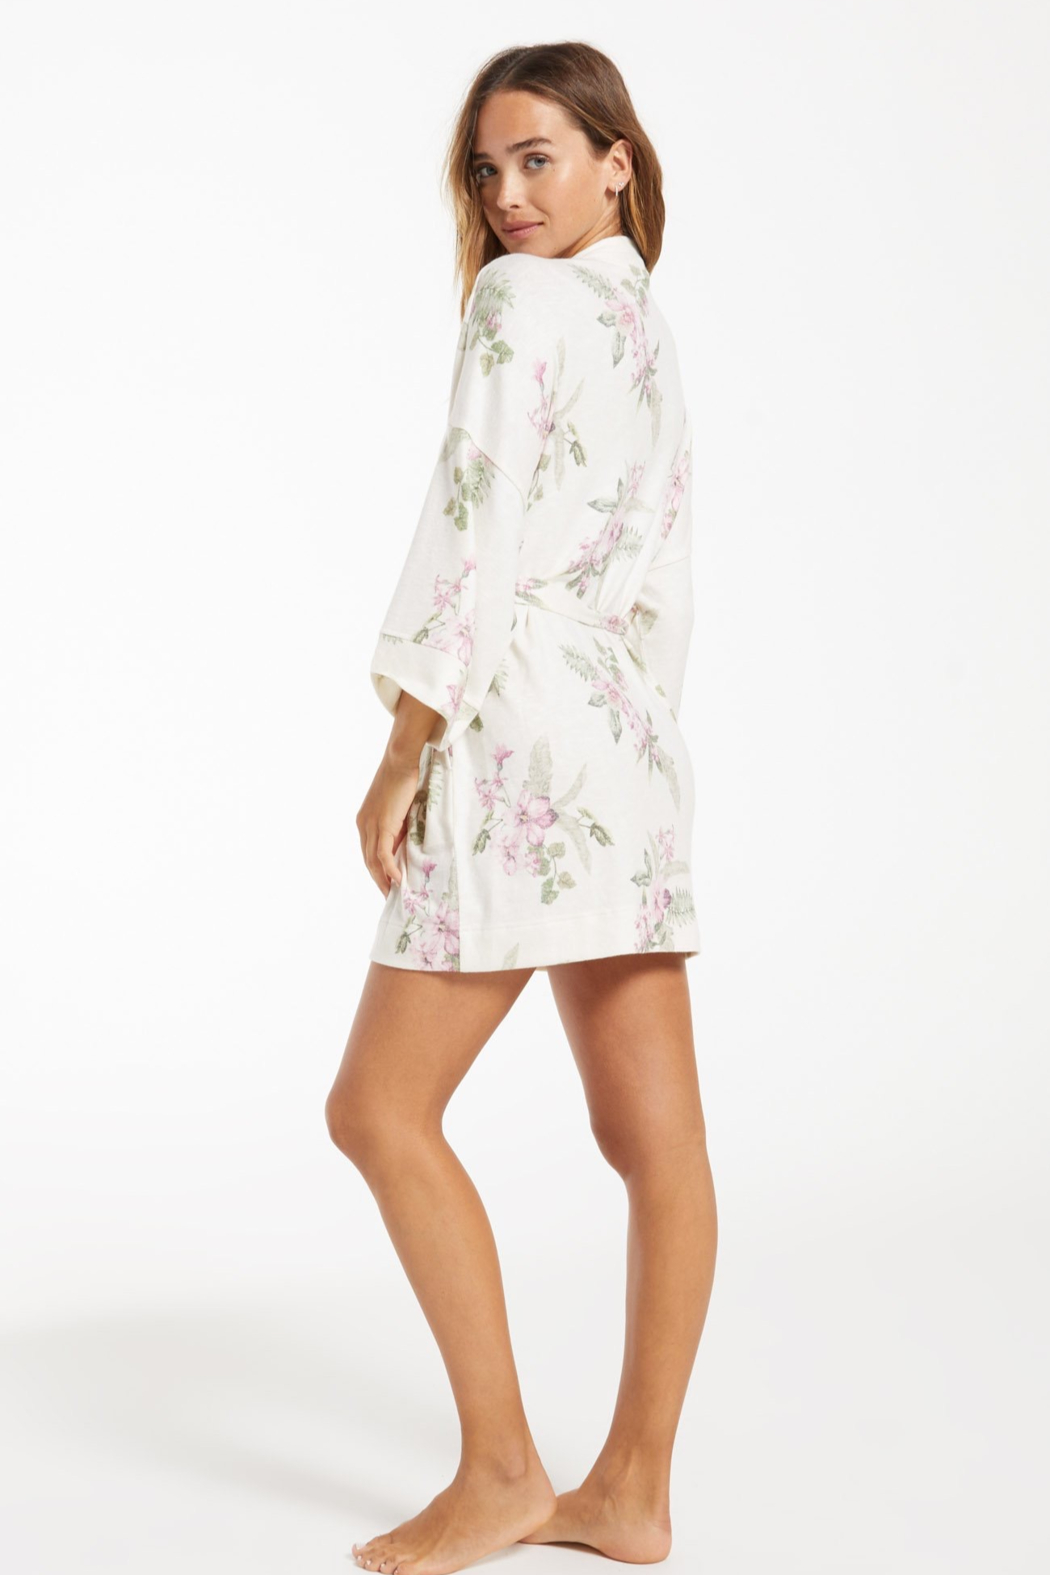 z supply Vacay Floral Robe - Side Cropped Image